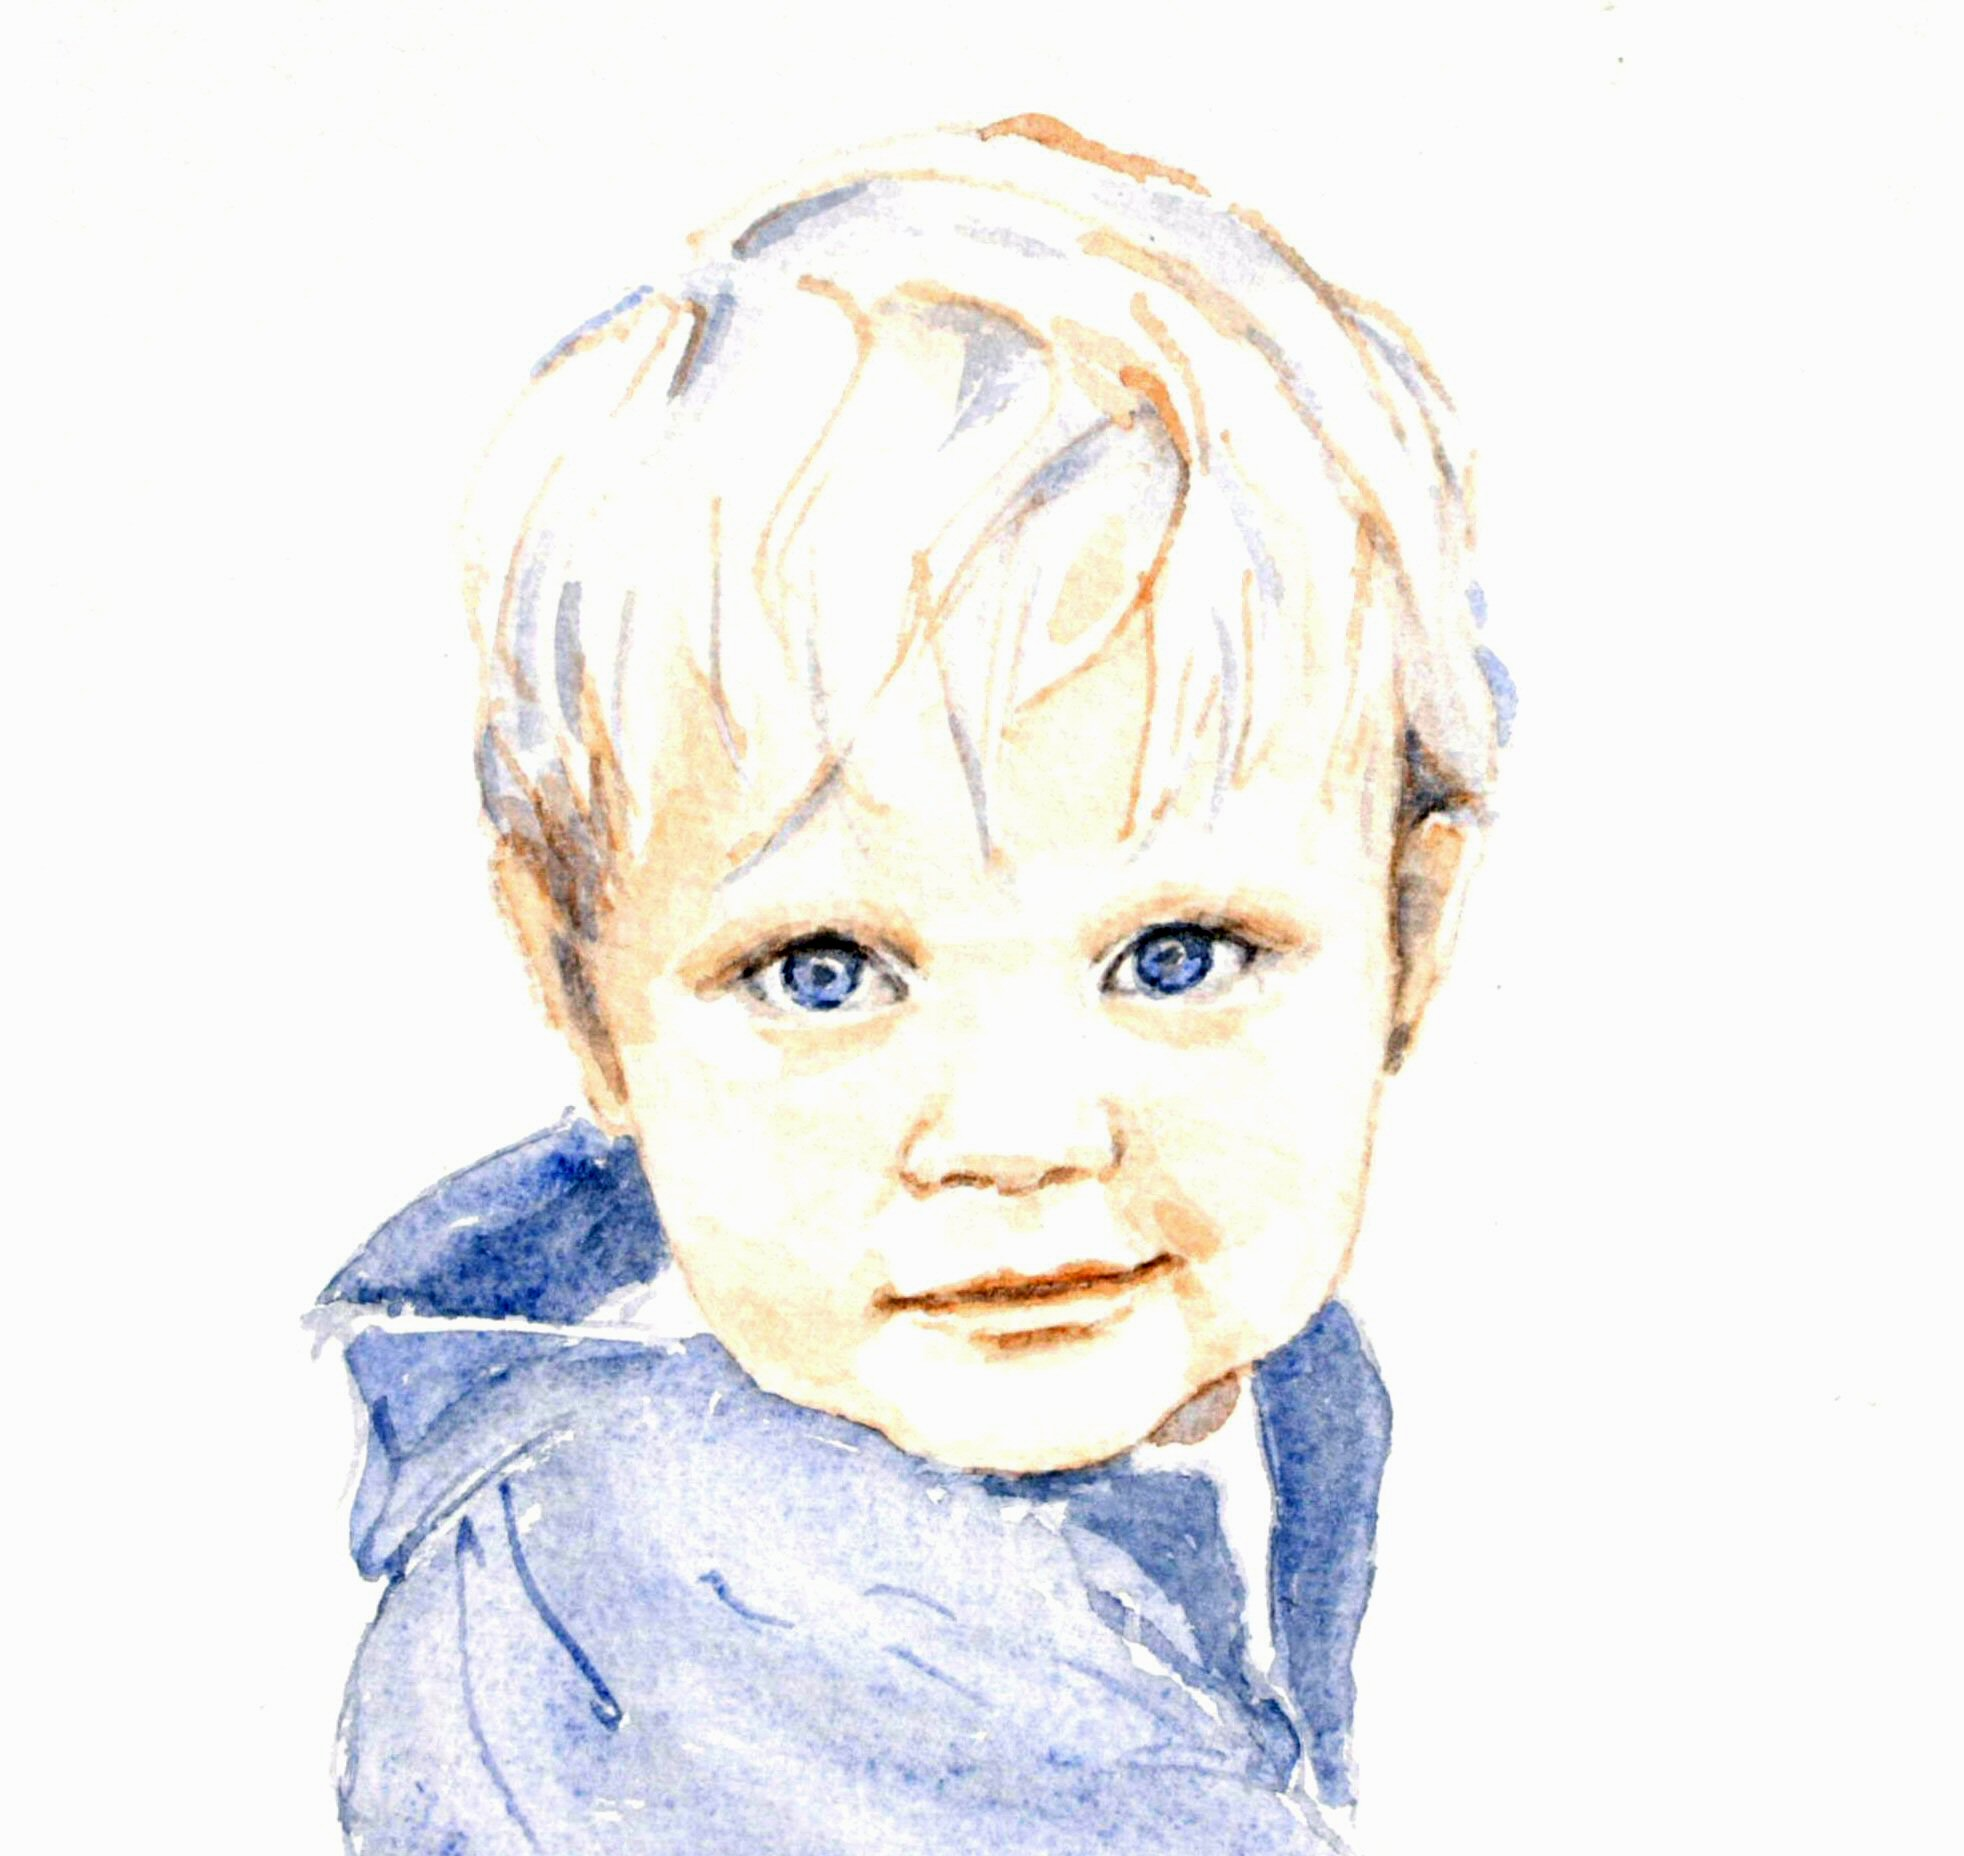 Olivier - Watercolour (23cmx24cm)